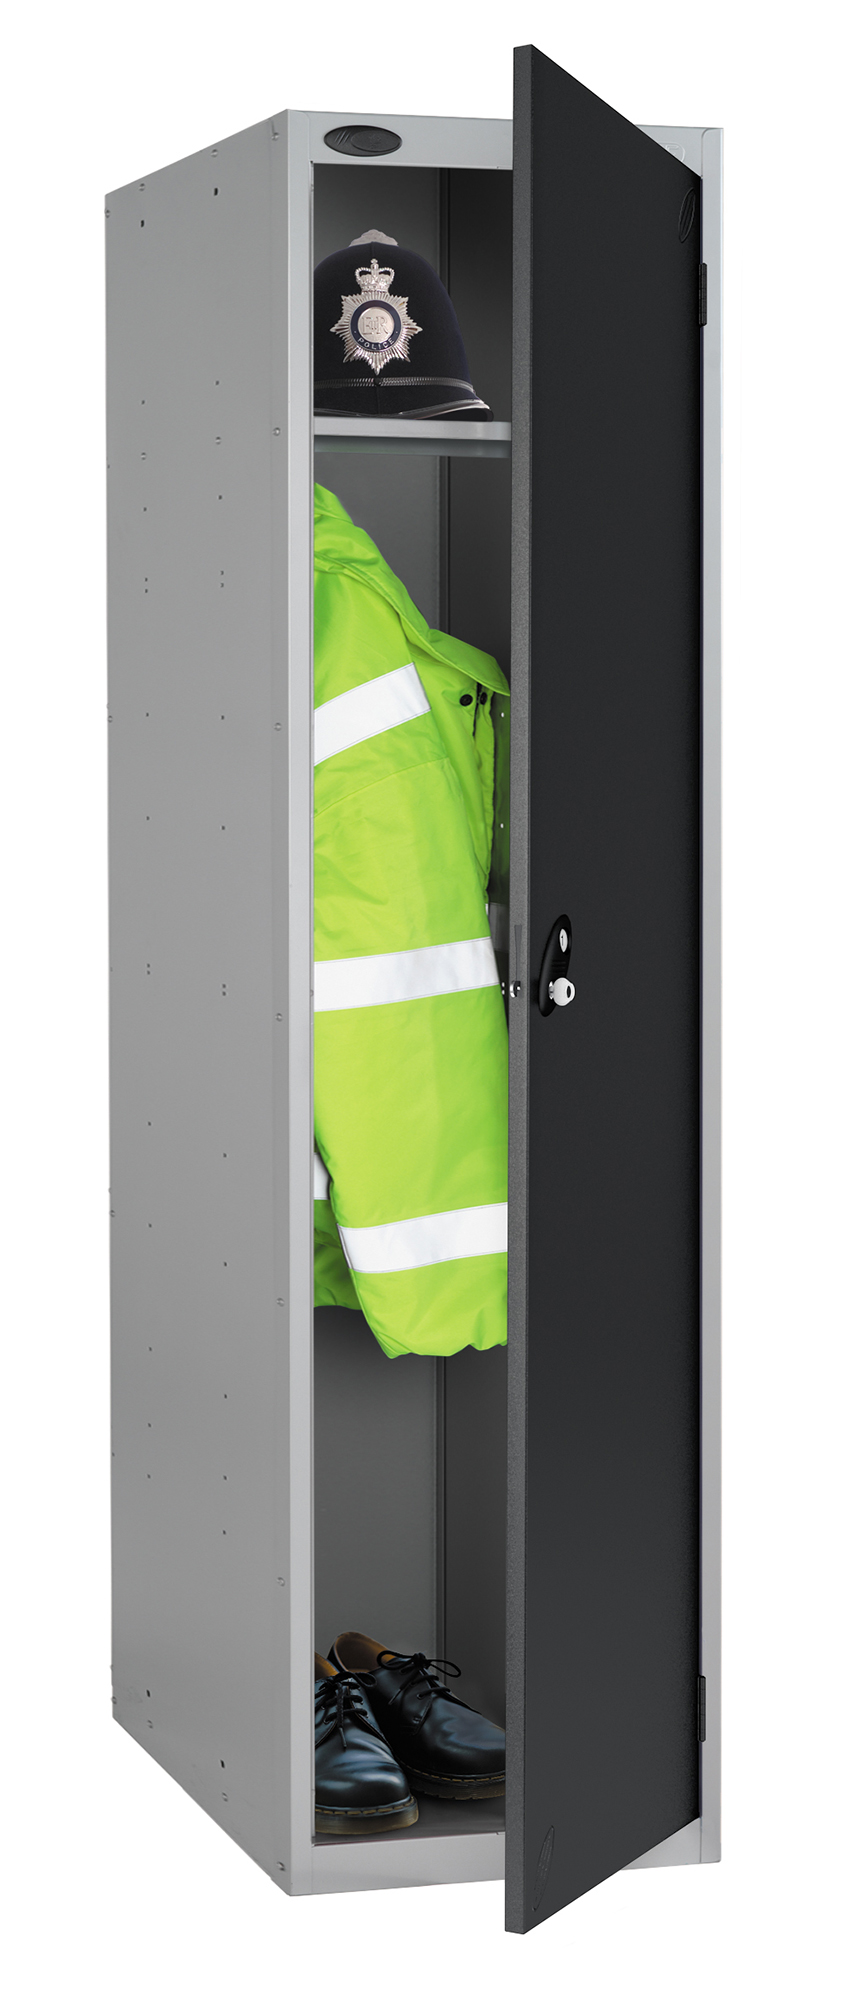 Probe high capacity police locker in black colour is designed to accommodate personal body armor